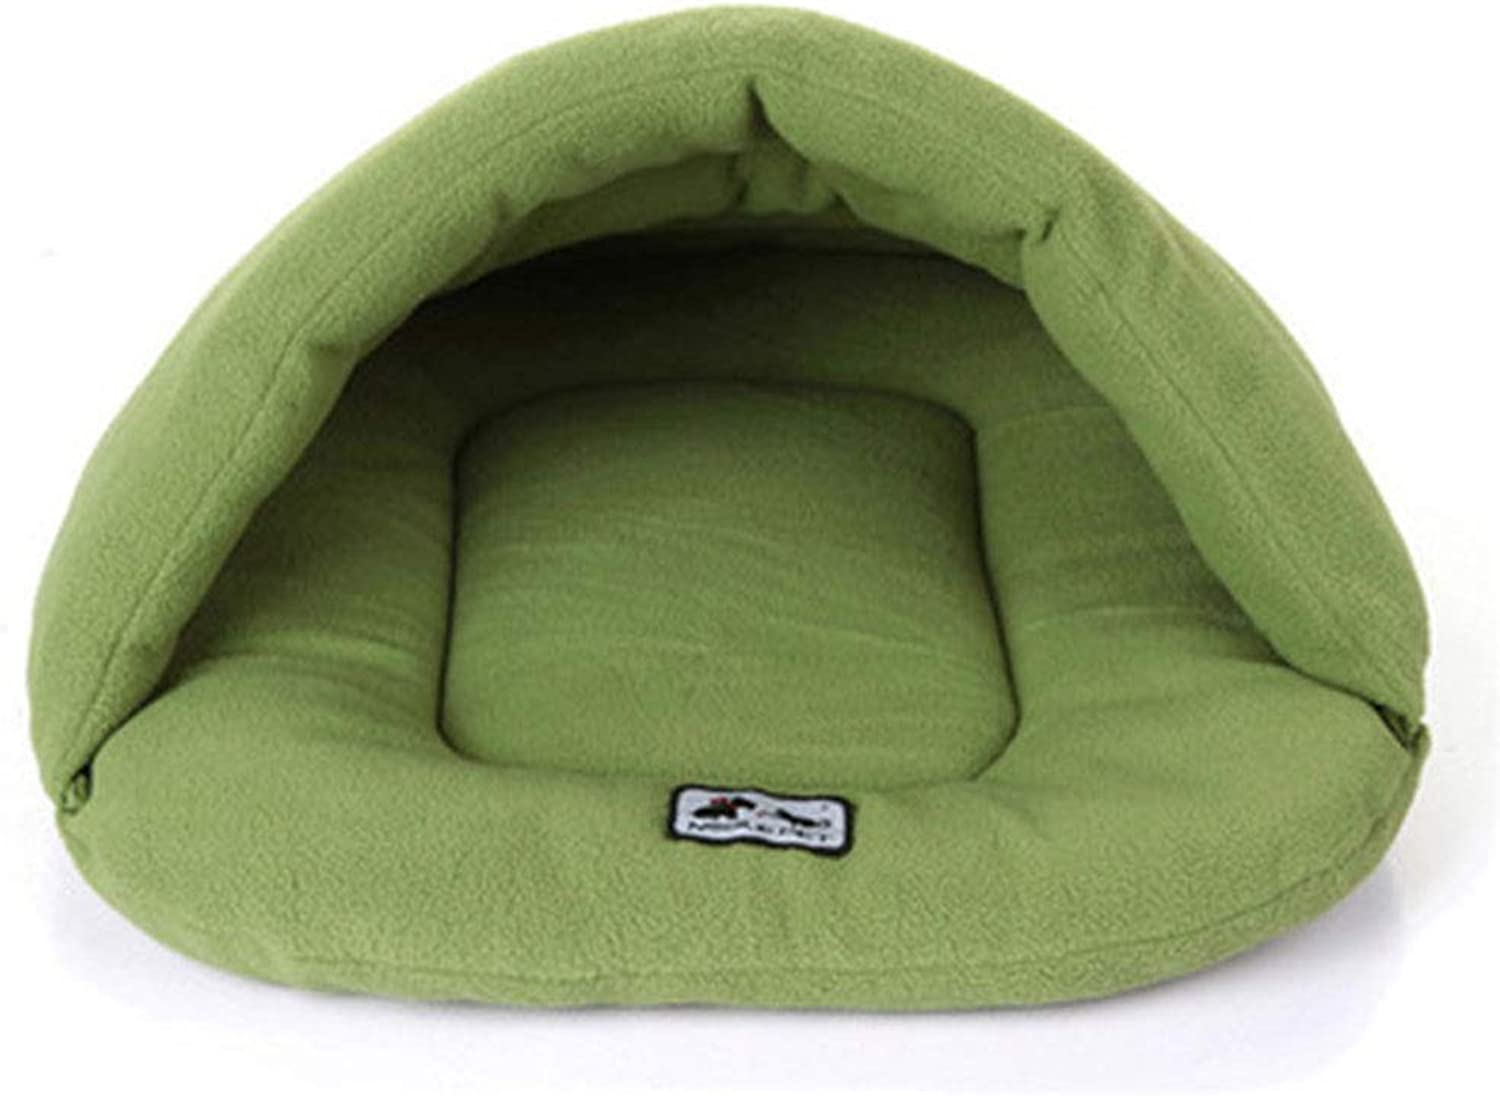 AXIANQI Warm Pet Sleeping Bag Pet Nest Kennel Cat Litter Rabbit Nest Large Medium And Small Pet Nest Pet House Nest A (color   GREEN, Size   M)